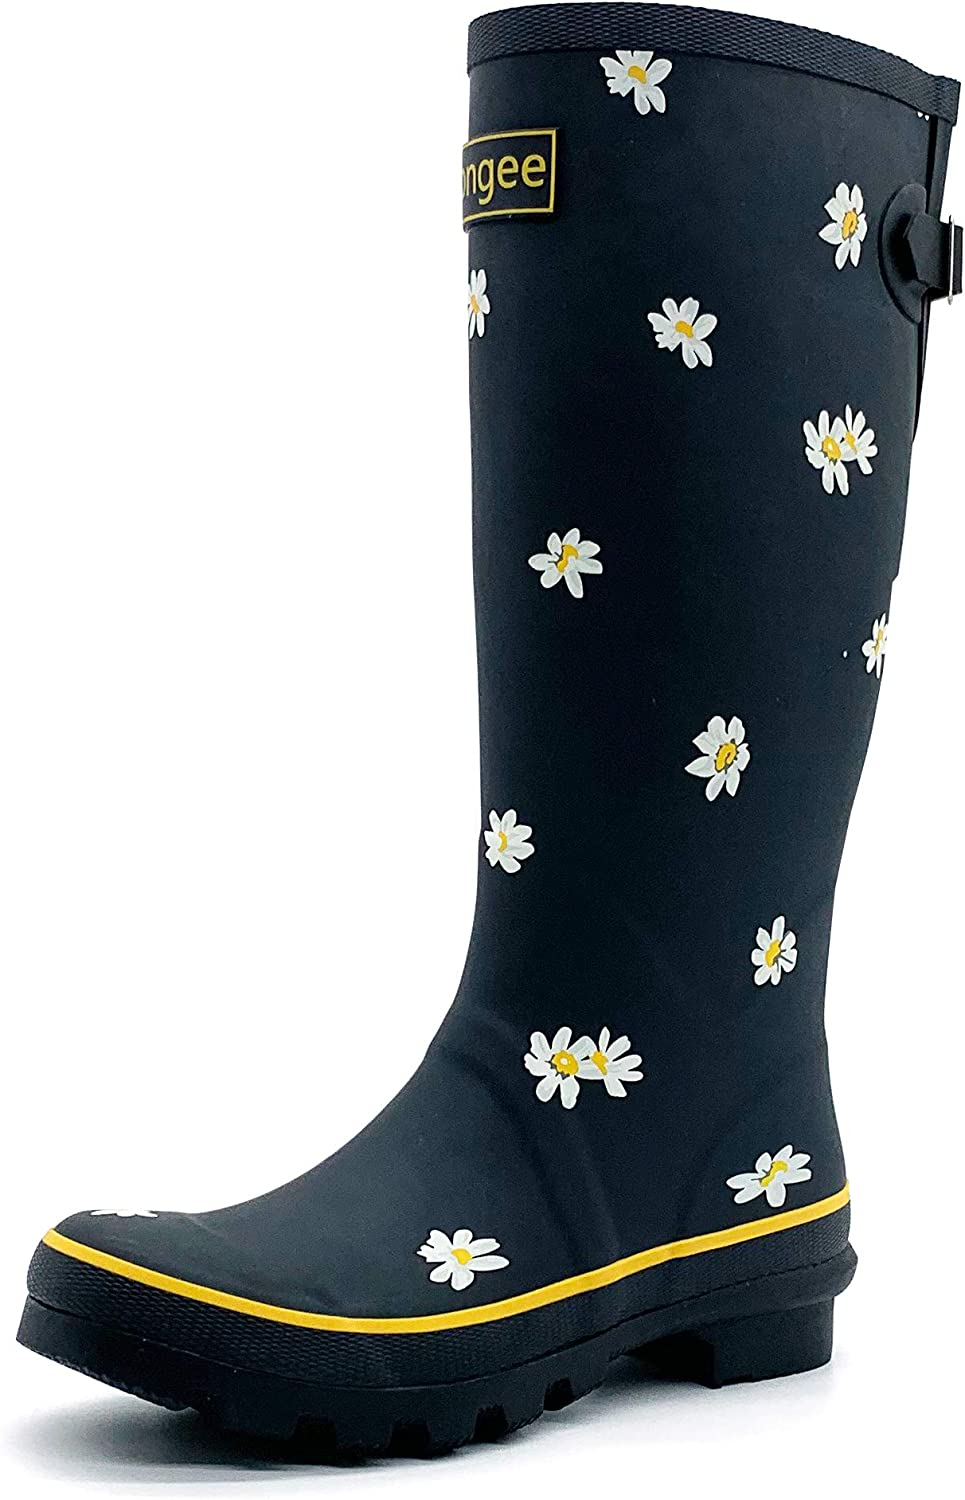 Rongee Women's Tall Rubber Rain Boots Daisy Printed with Adjustable Buckle